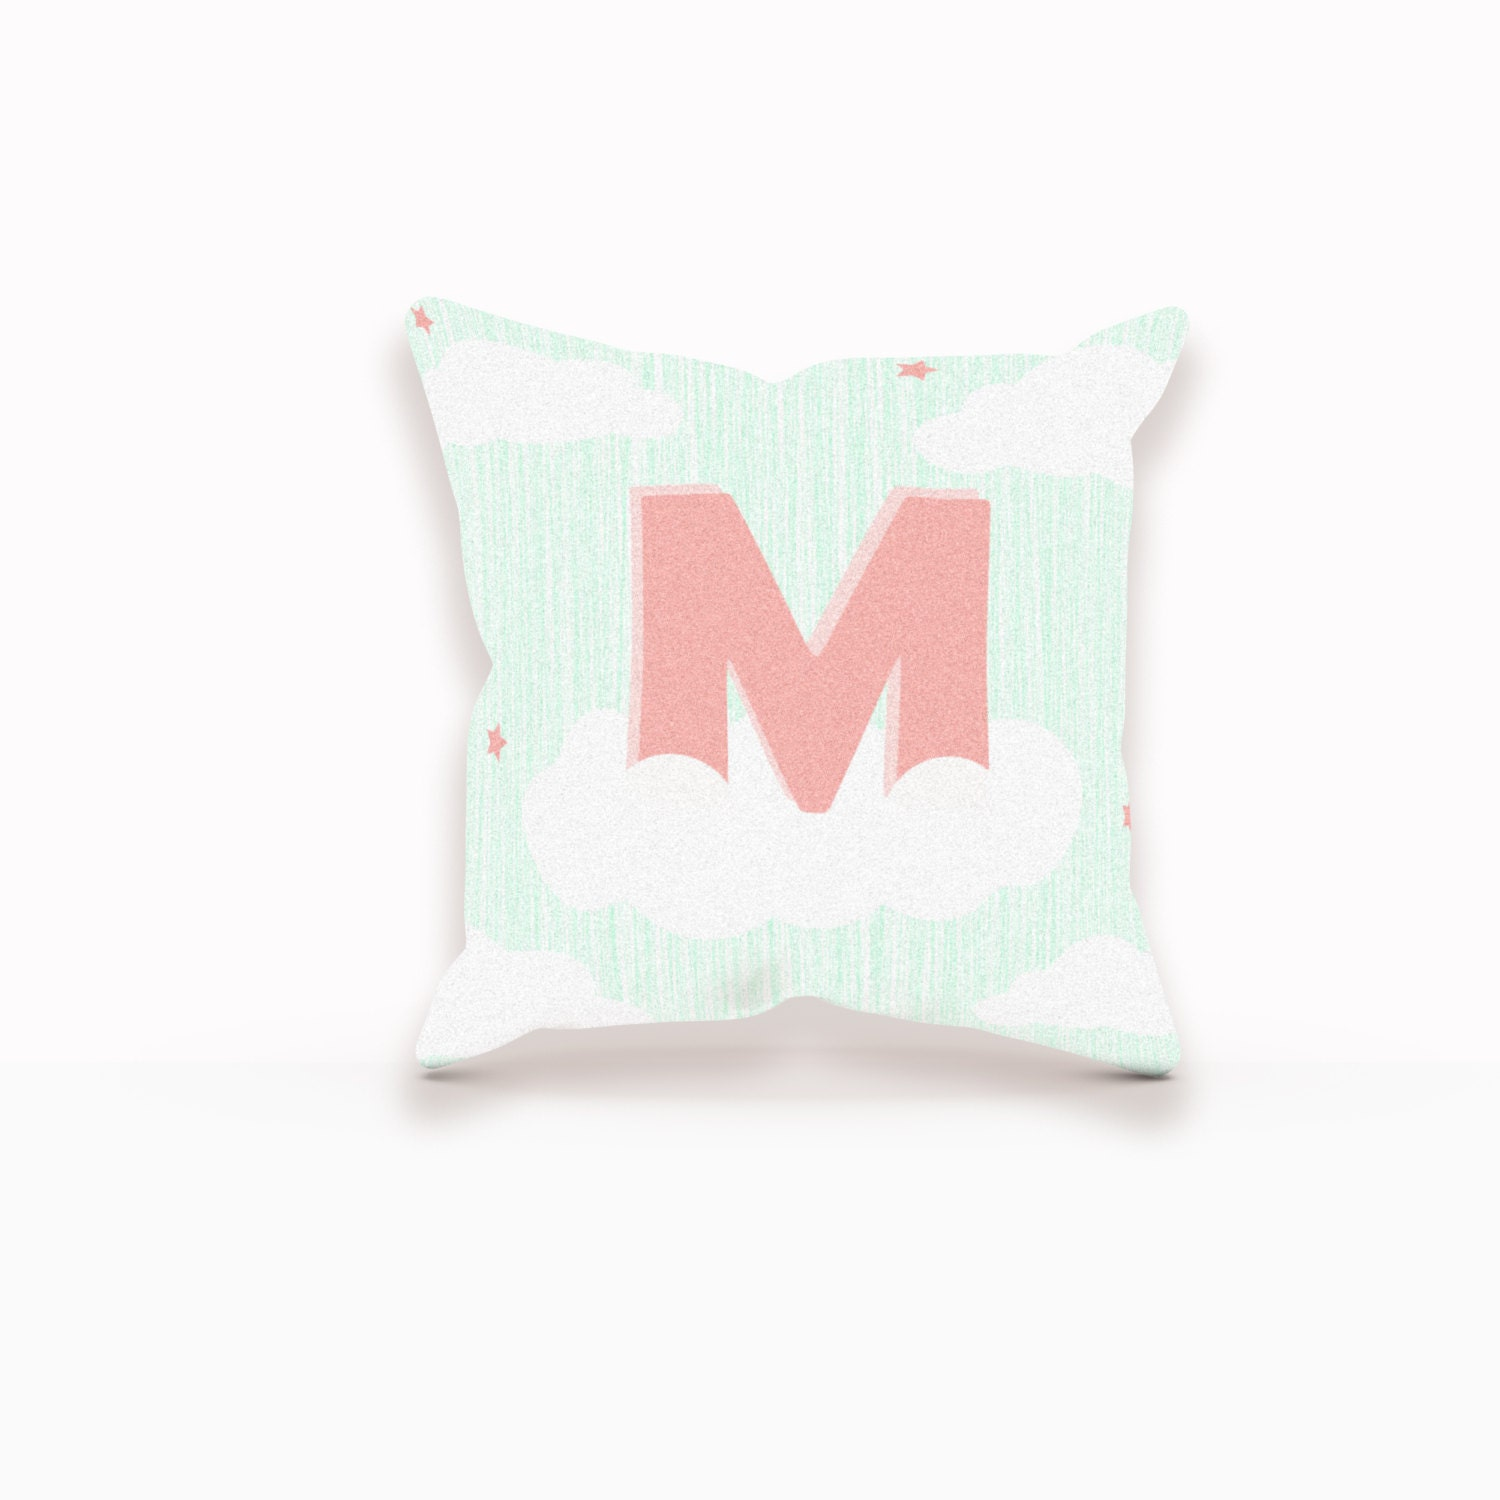 Decorative Pillows With Monogram : Monogram Decorative Pillow Cloud Pillow Cloud Nursery Art